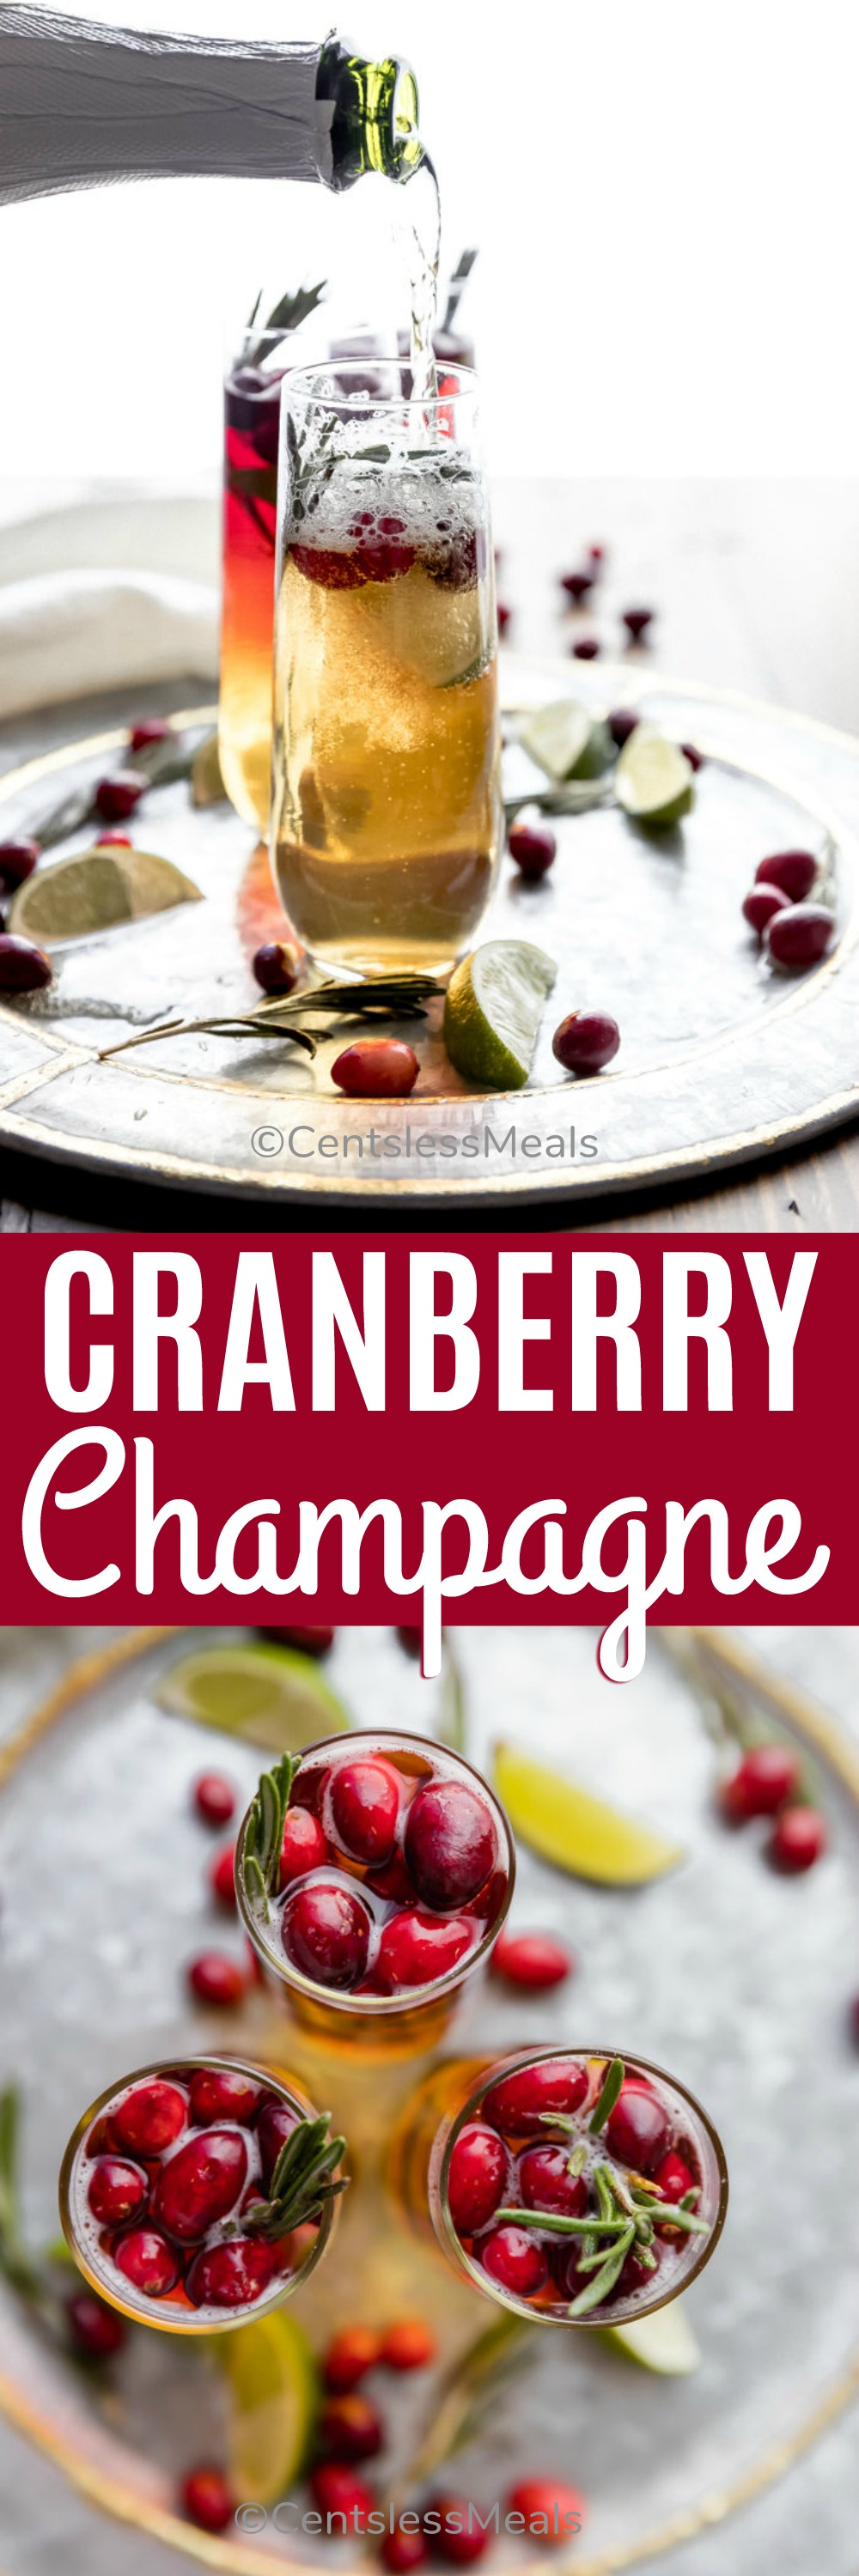 Cranberry champagne cocktails in glasses with a title